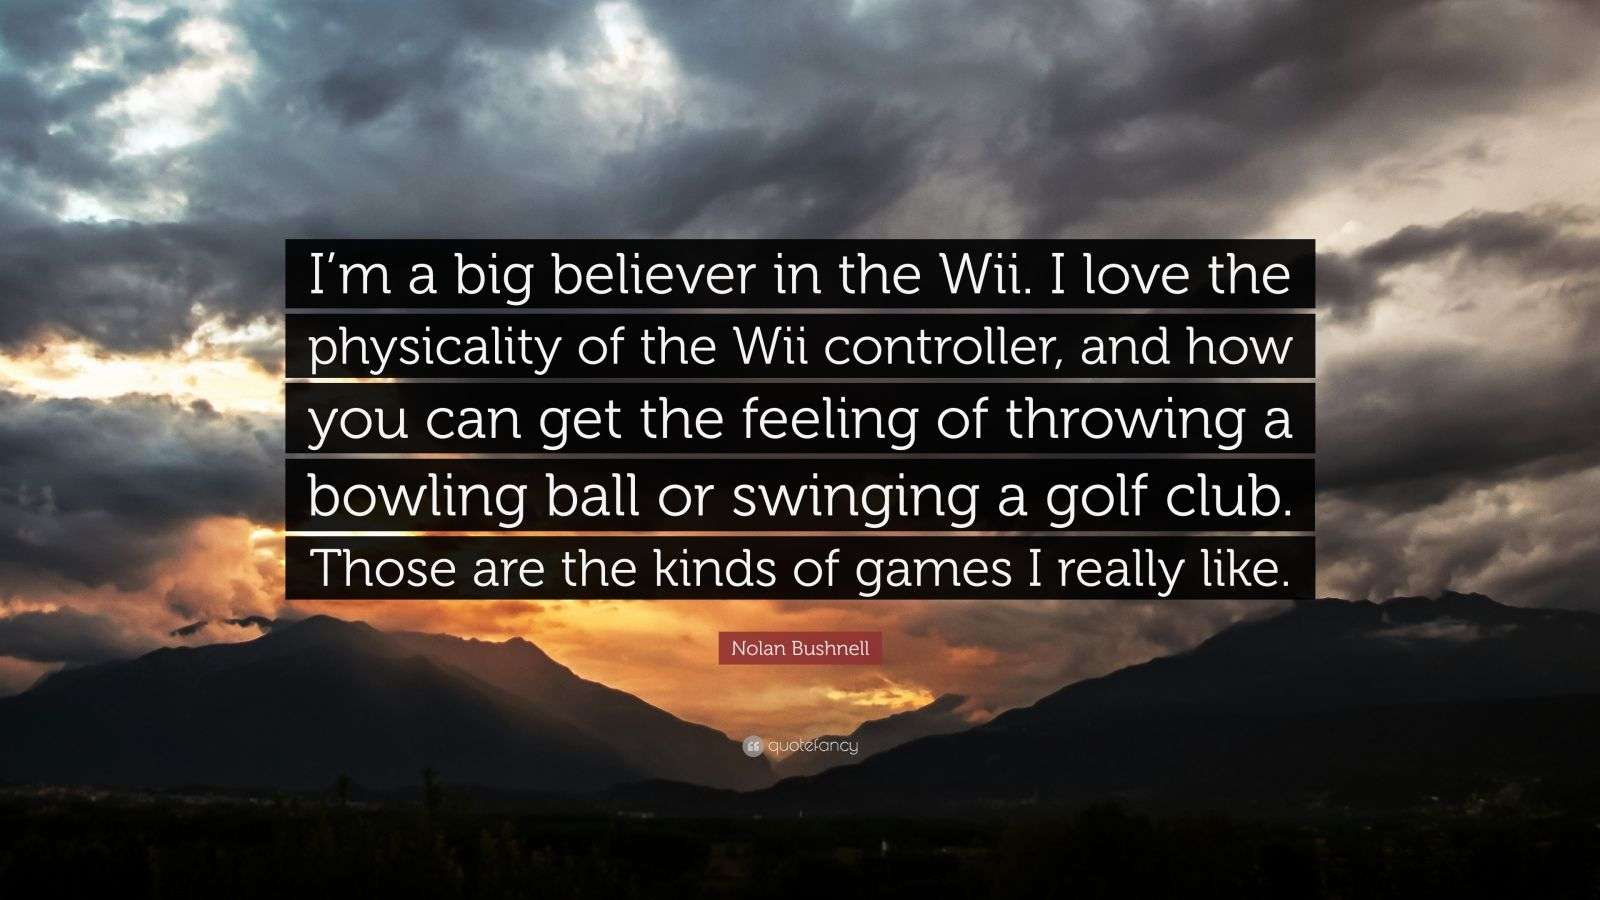 """Nolan Bushnell Quote: """"I'm a big believer in the Wii. I love the physicality of the Wii controller, and how you can get the feeling of throwing a bowling ball or swinging a golf club. Those are the kinds of games I really like."""""""